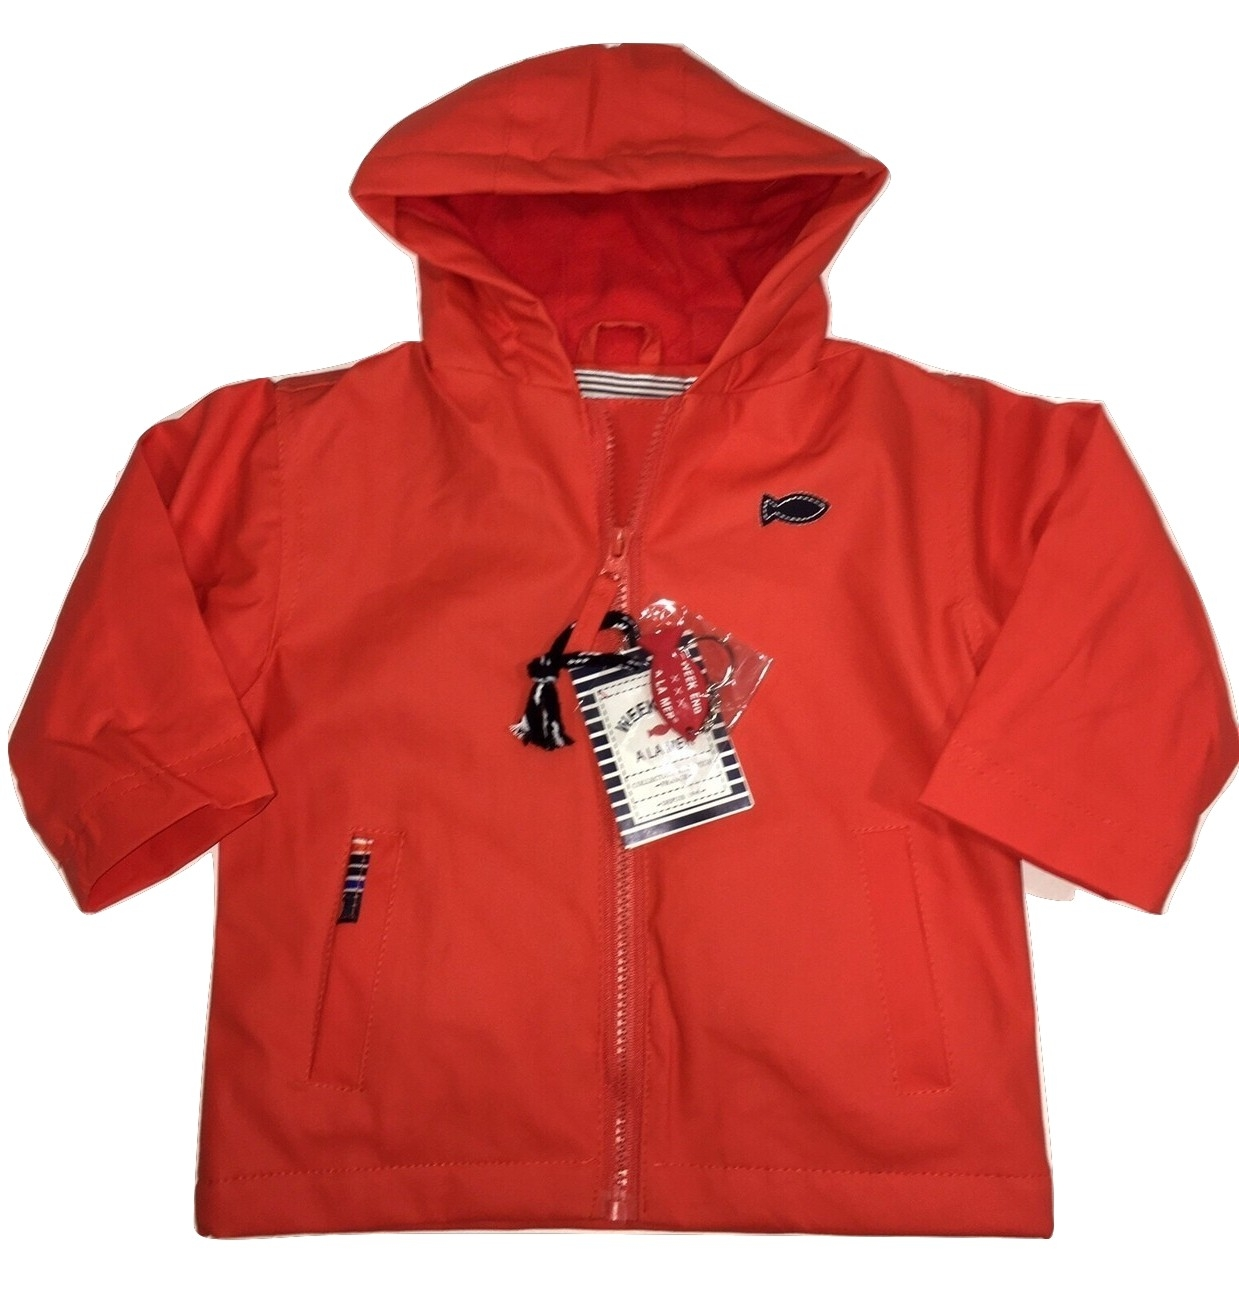 Weekend a la mer boys orange jacket